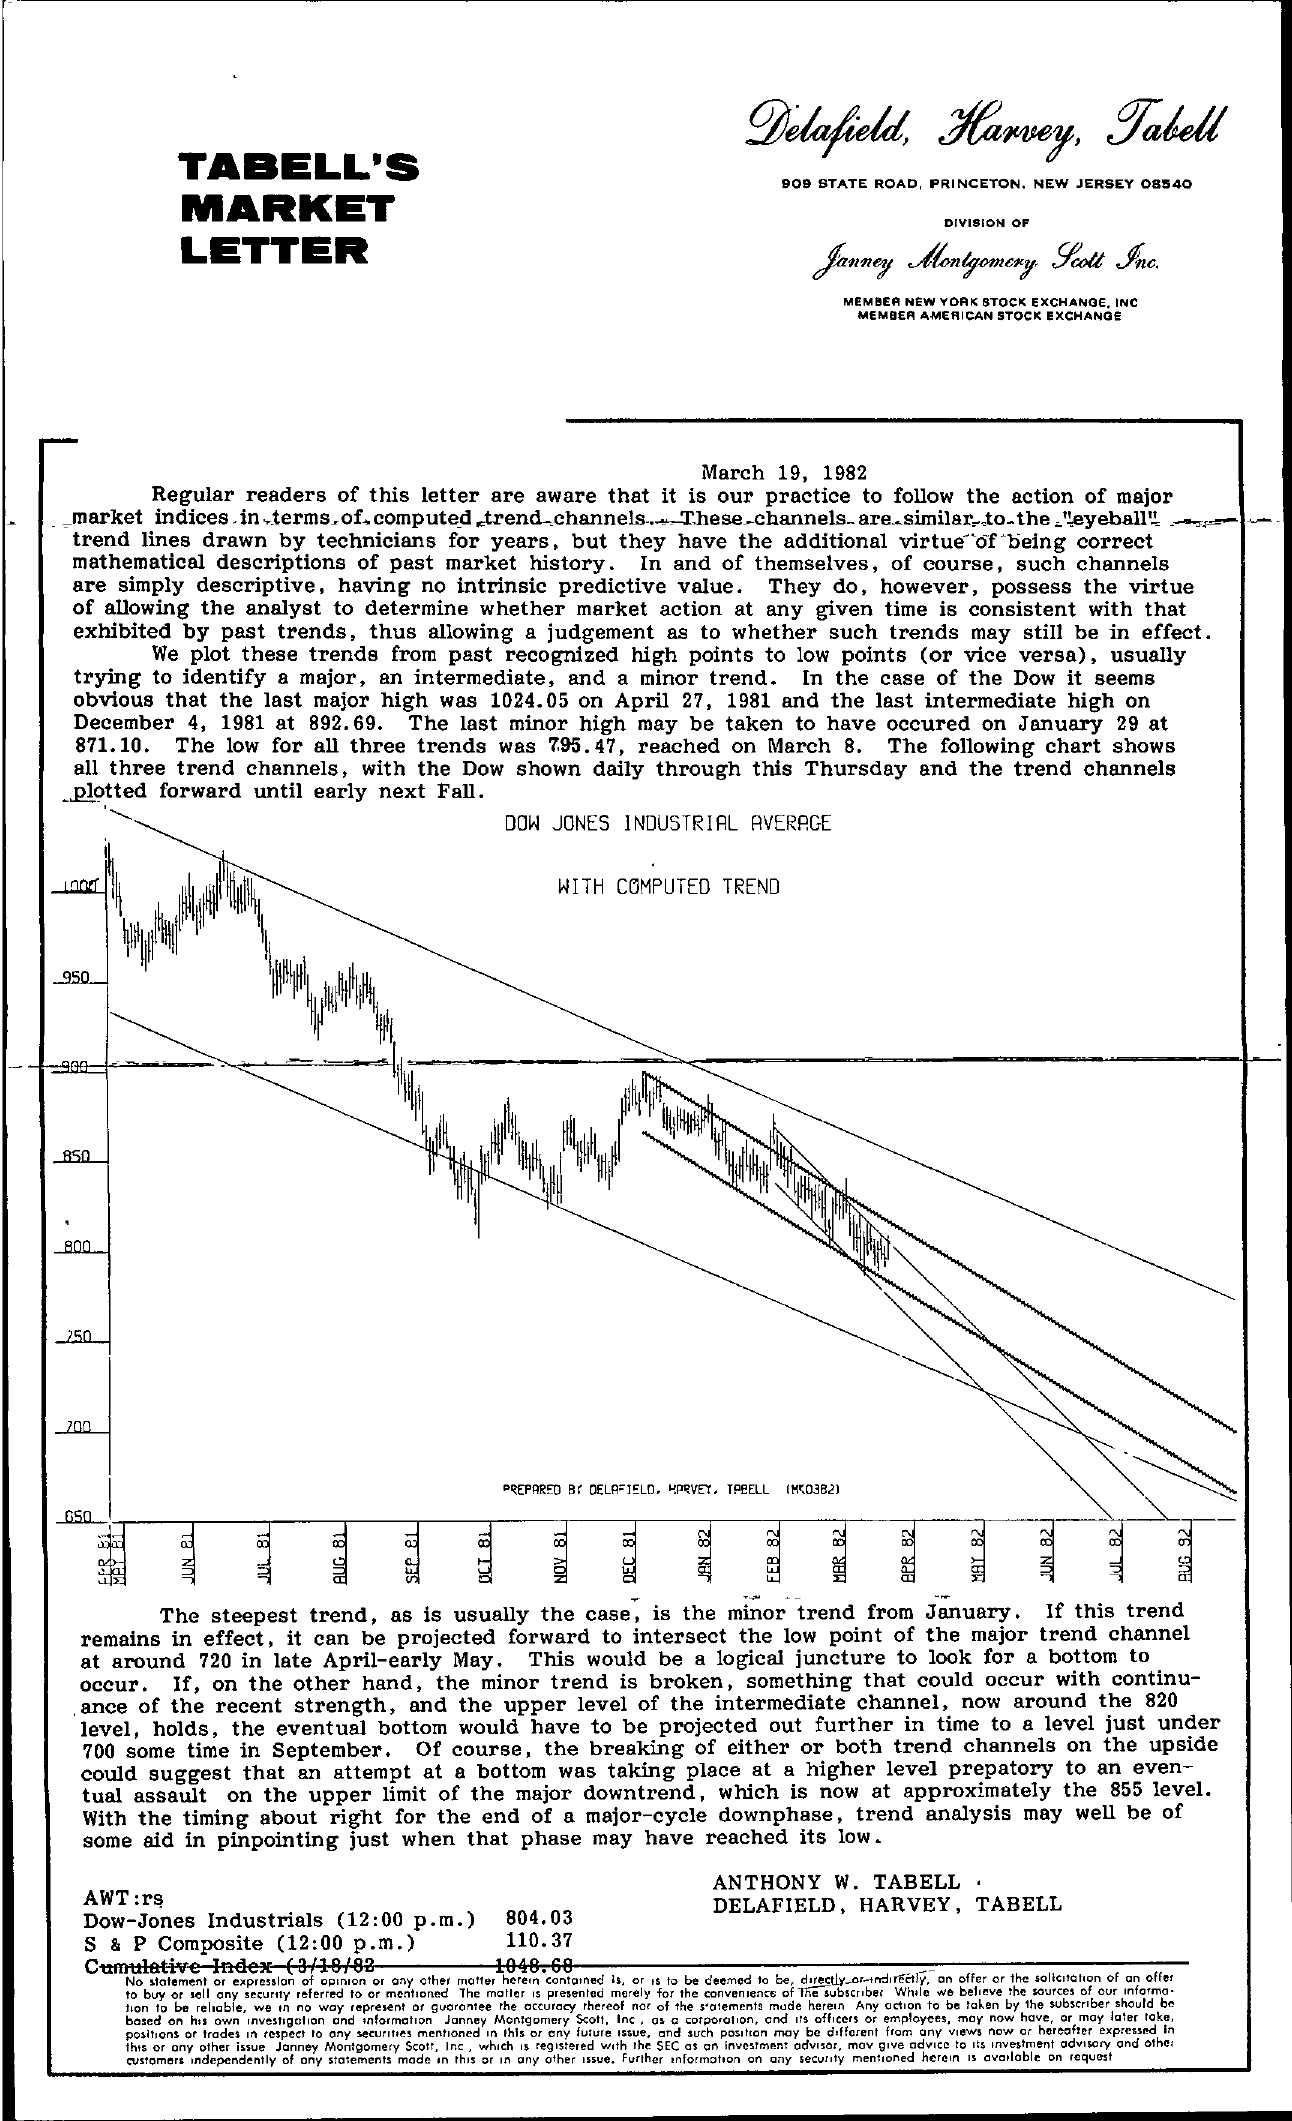 Tabell's Market Letter - March 19, 1982